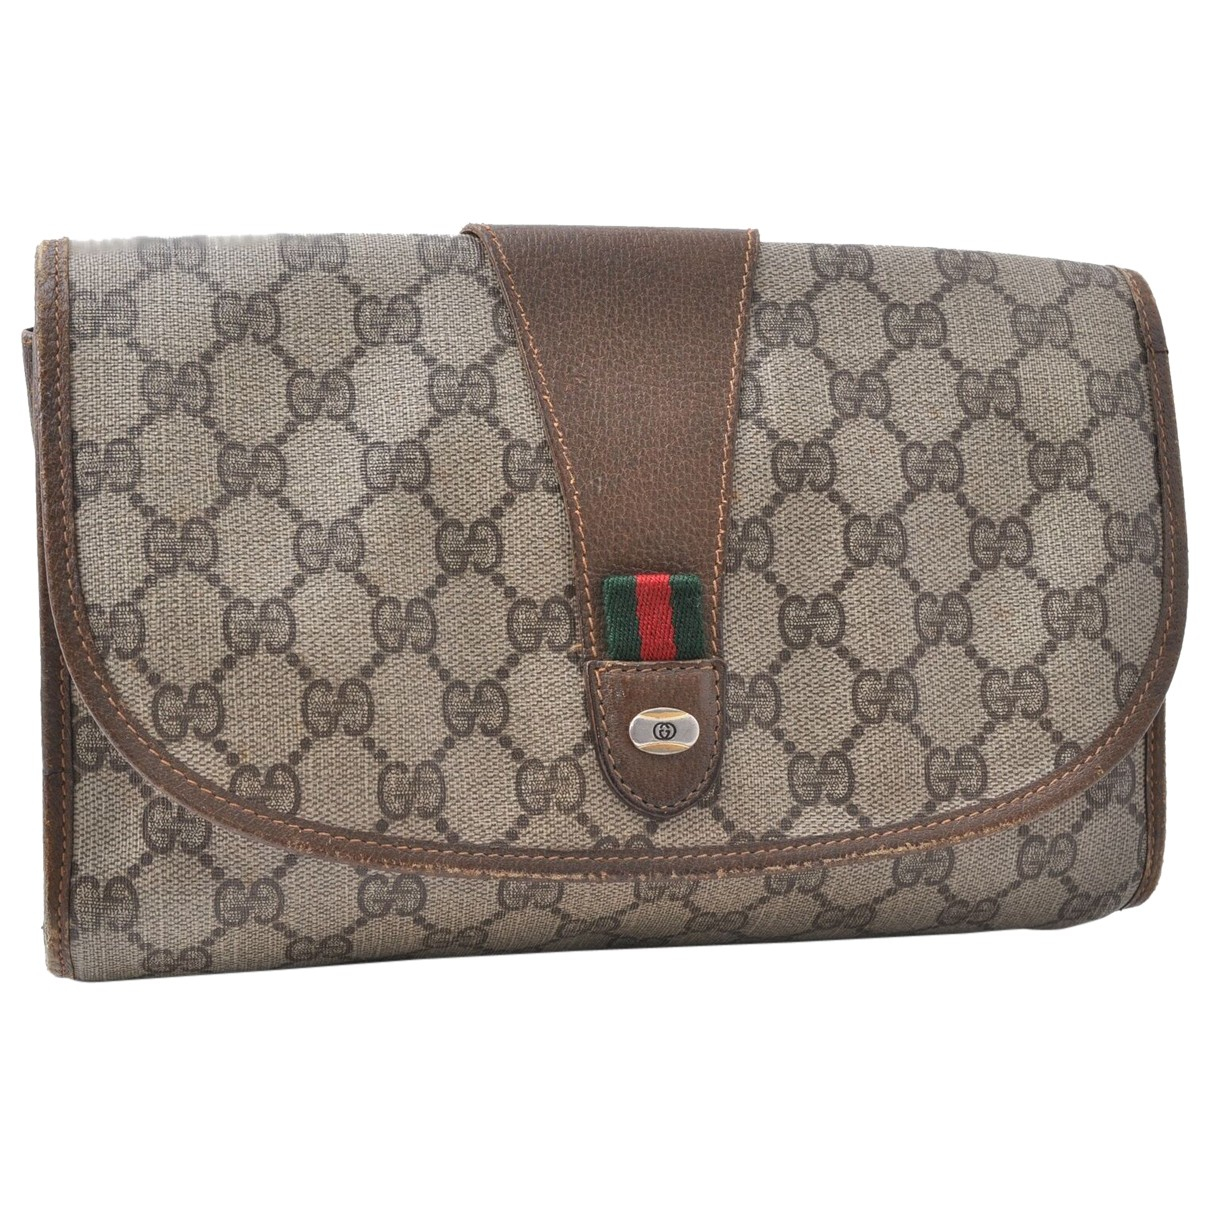 Gucci N Brown Clutch bag for Women N